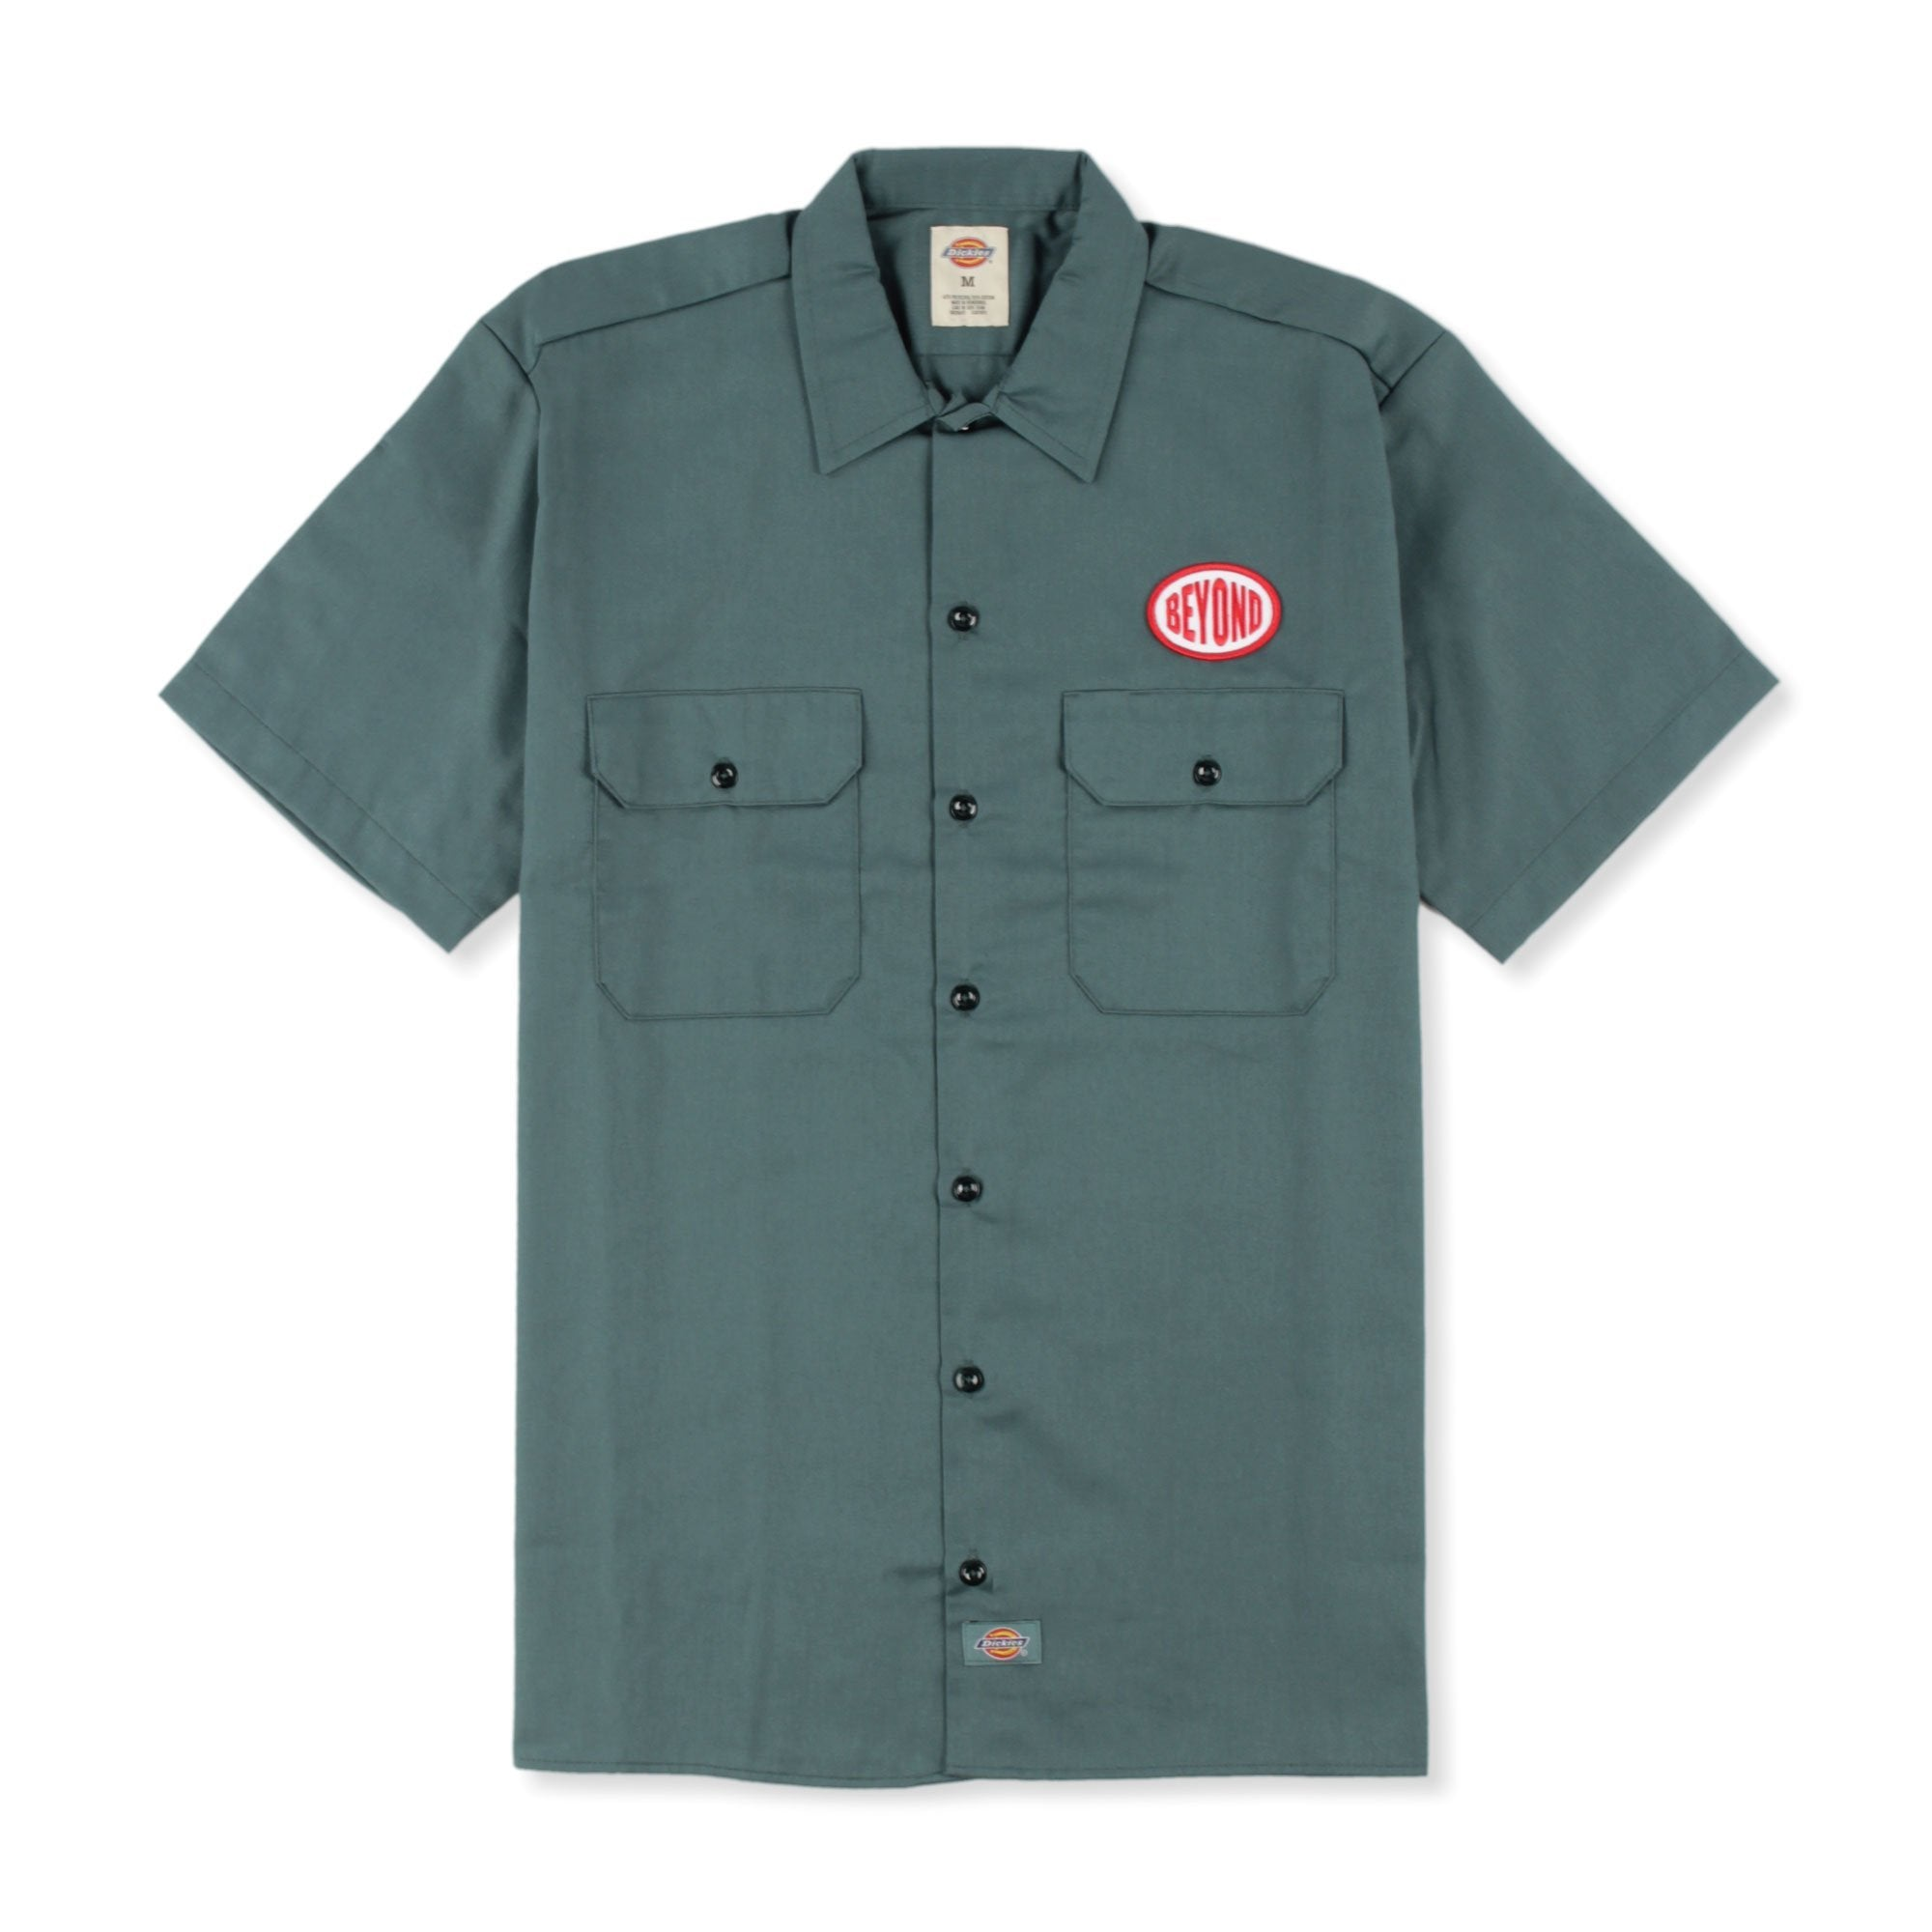 Beyond Bupont Work Shirt Product Photo #1